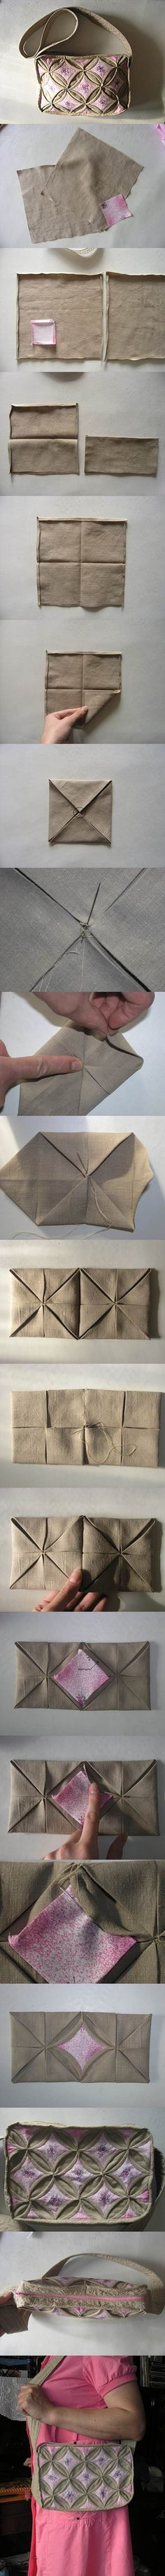 How to make an origami handbag fashion diy diy crafts do it yourself diy projects diy fashion origami